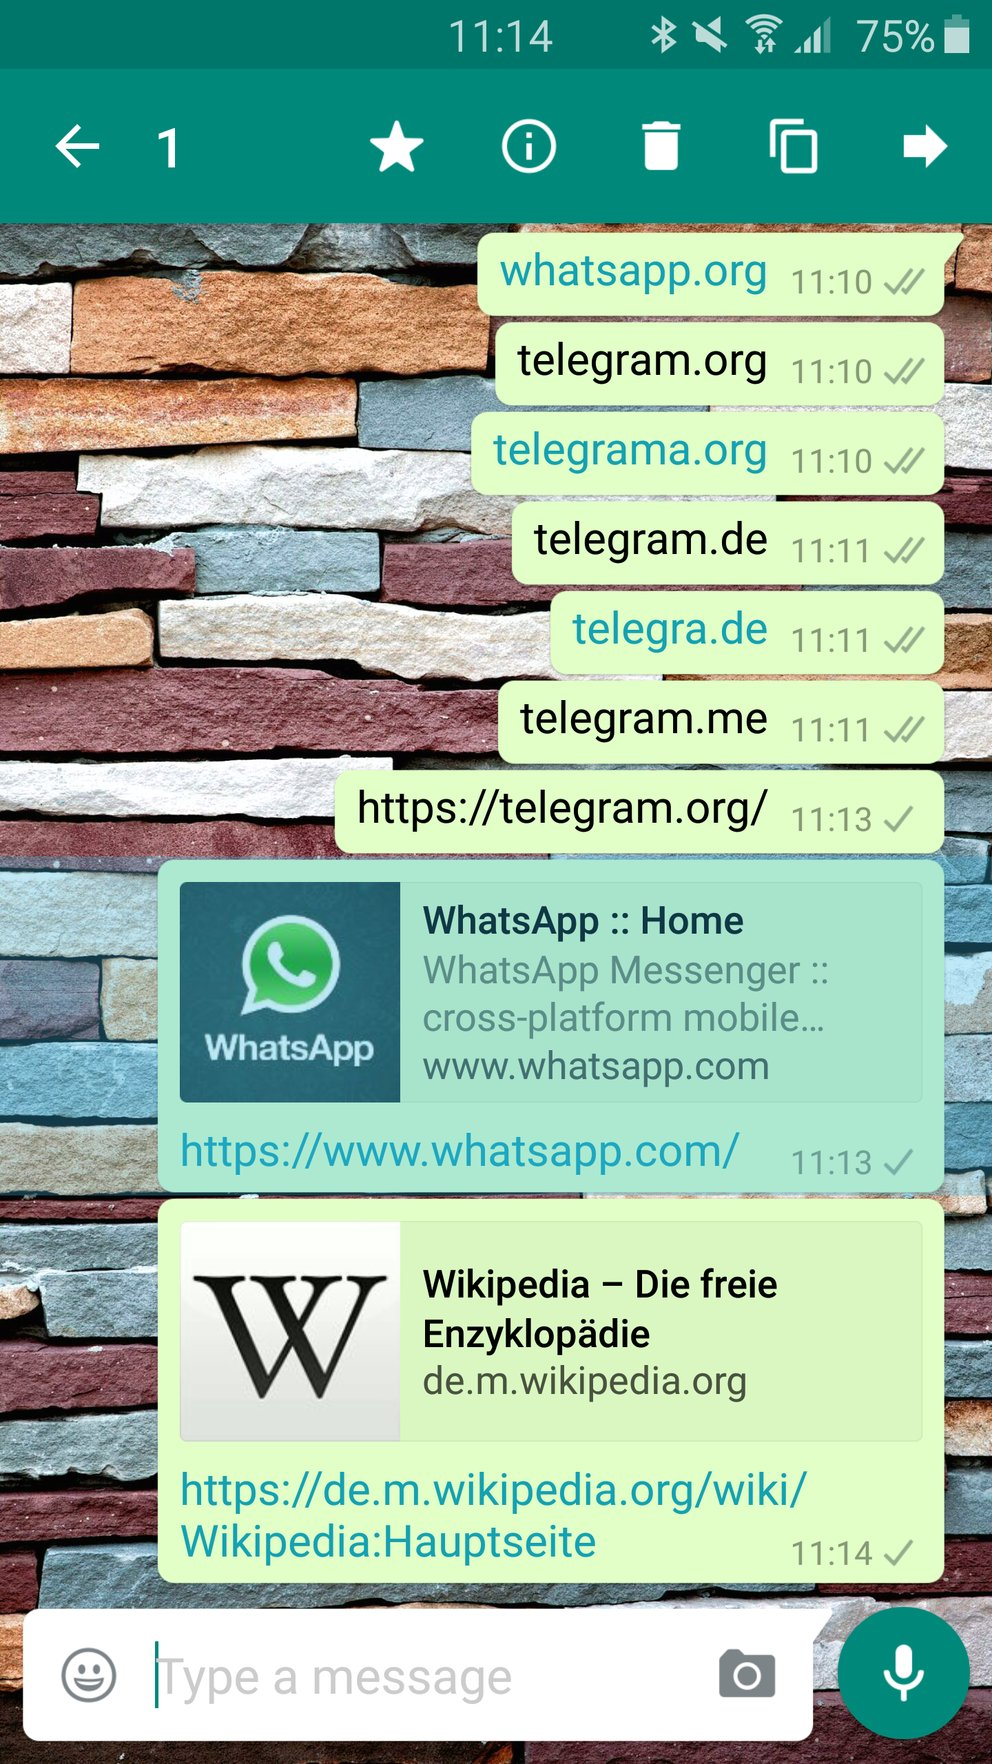 whatsapp-telegram-zensur-screenshot-1